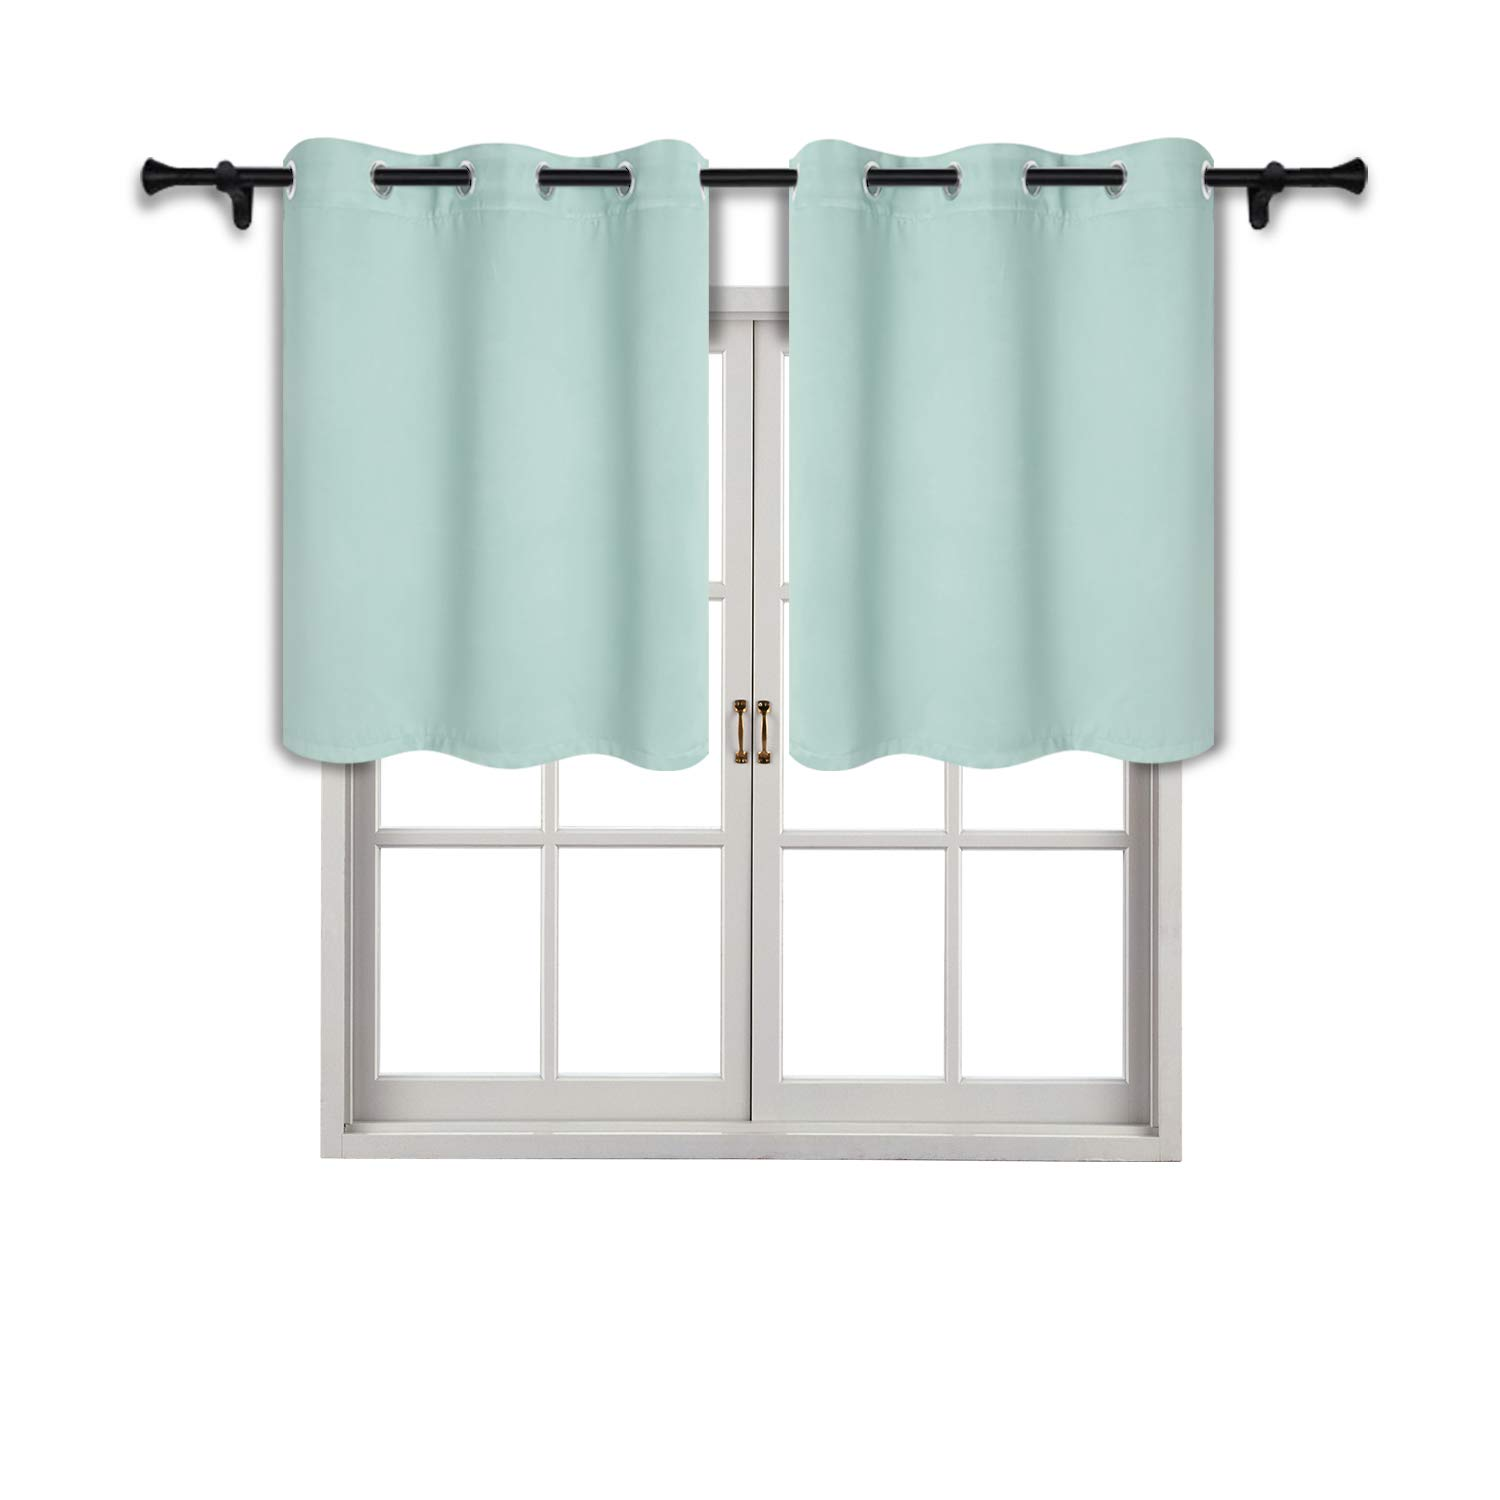 SUO AI TEXTILE Blackout Grommet Curtains for Kitchen-Home Decor Thermal Insulated Grommet Tier Valance 42x36 Inch Mint Green 2 Panels